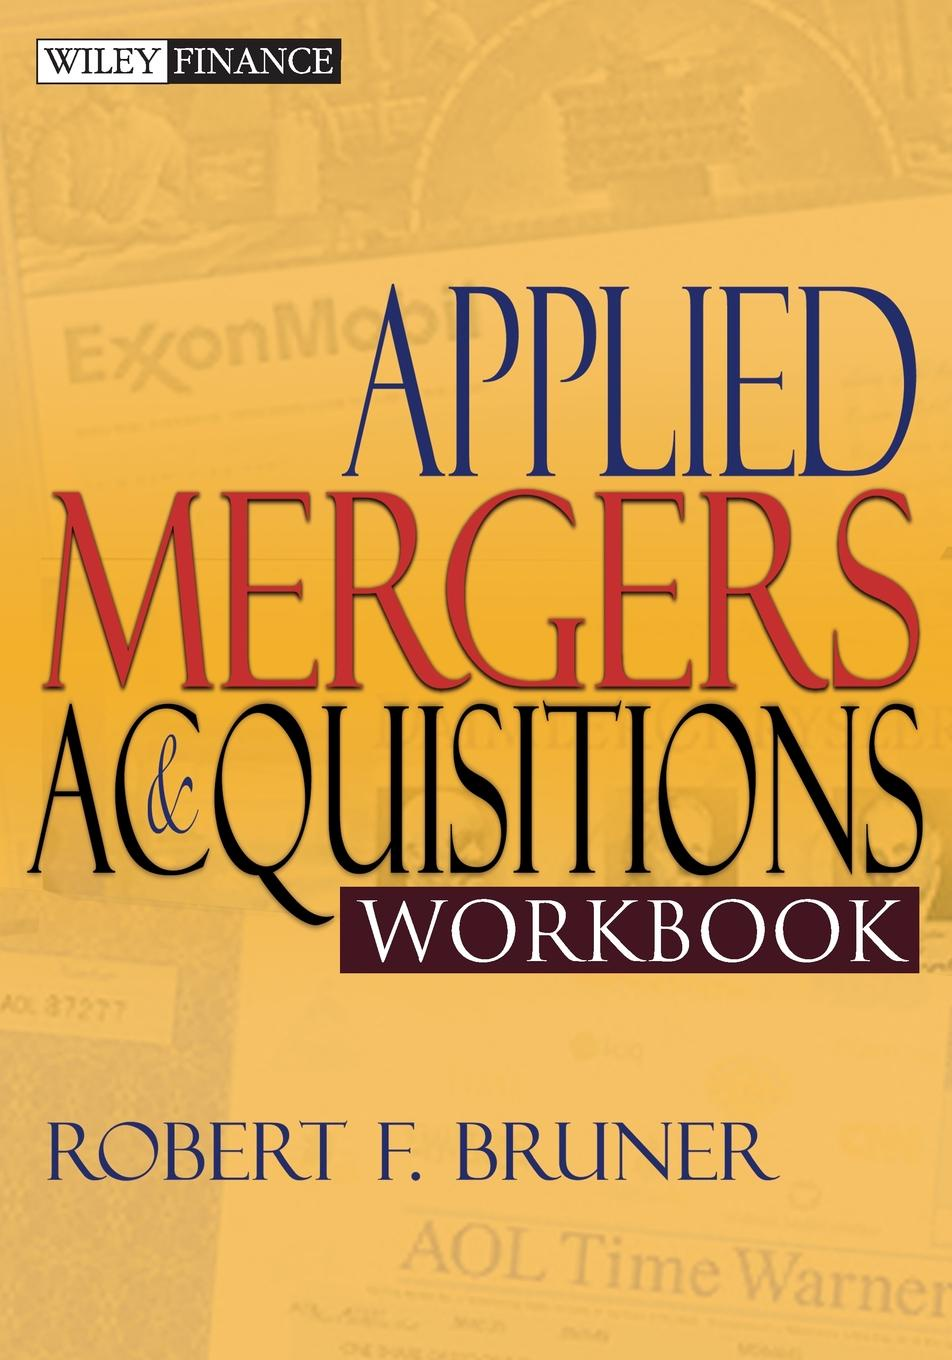 """Applied Mergers and Acquisitions Workbook Книга""""Applied Mergers and Acquisitions Workbook""""...."""